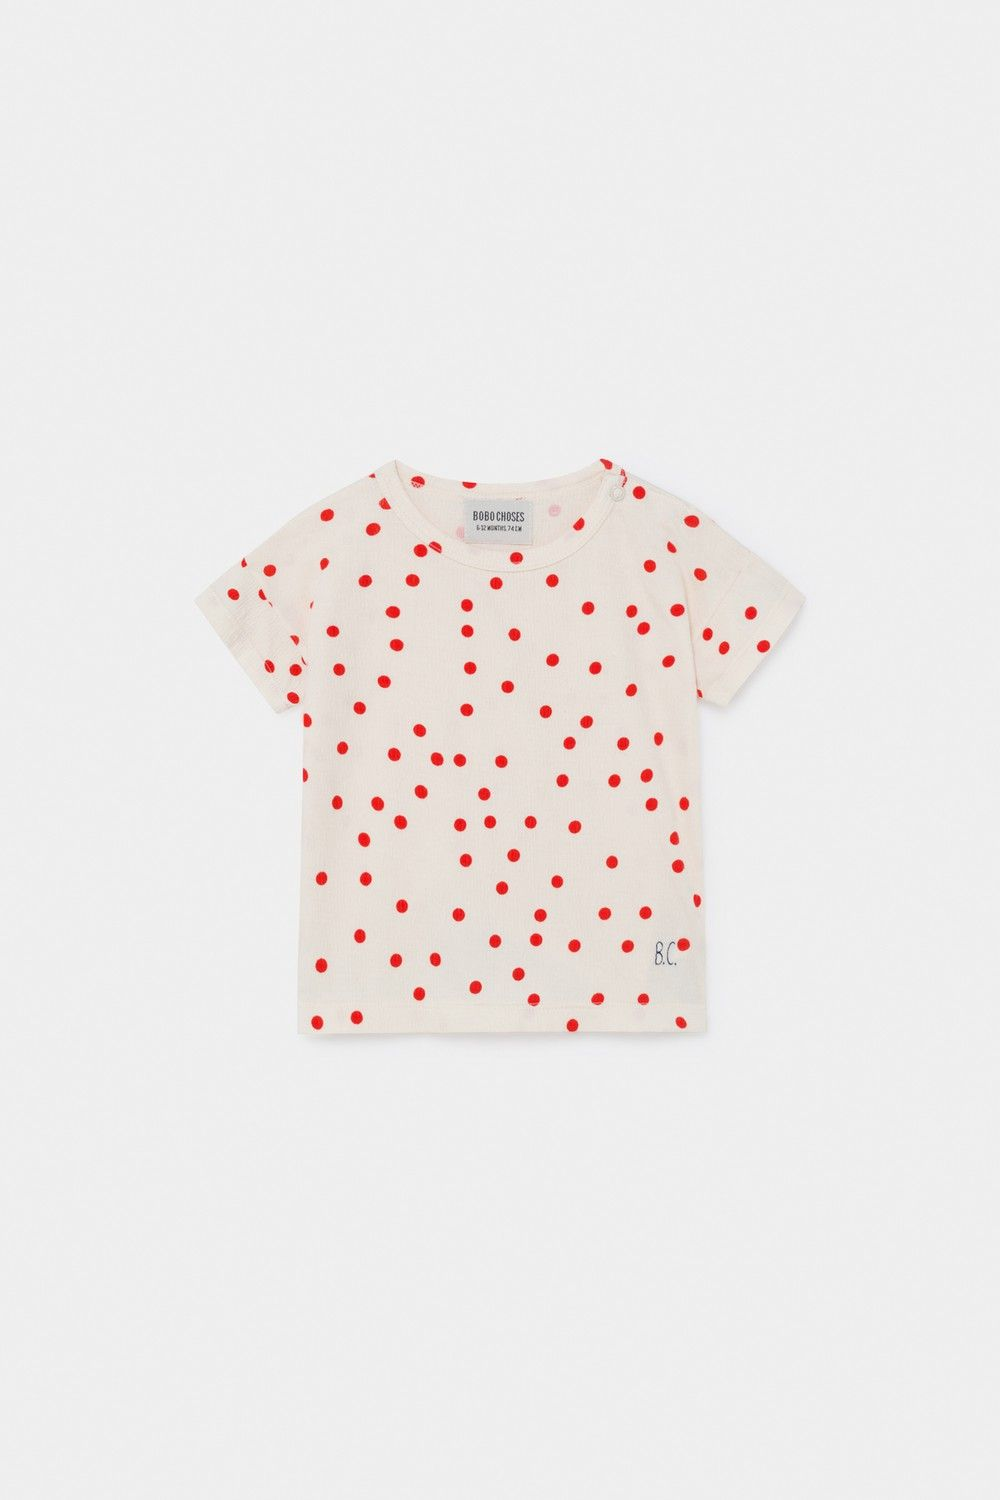 Bobo Choses T-Shirt Dots